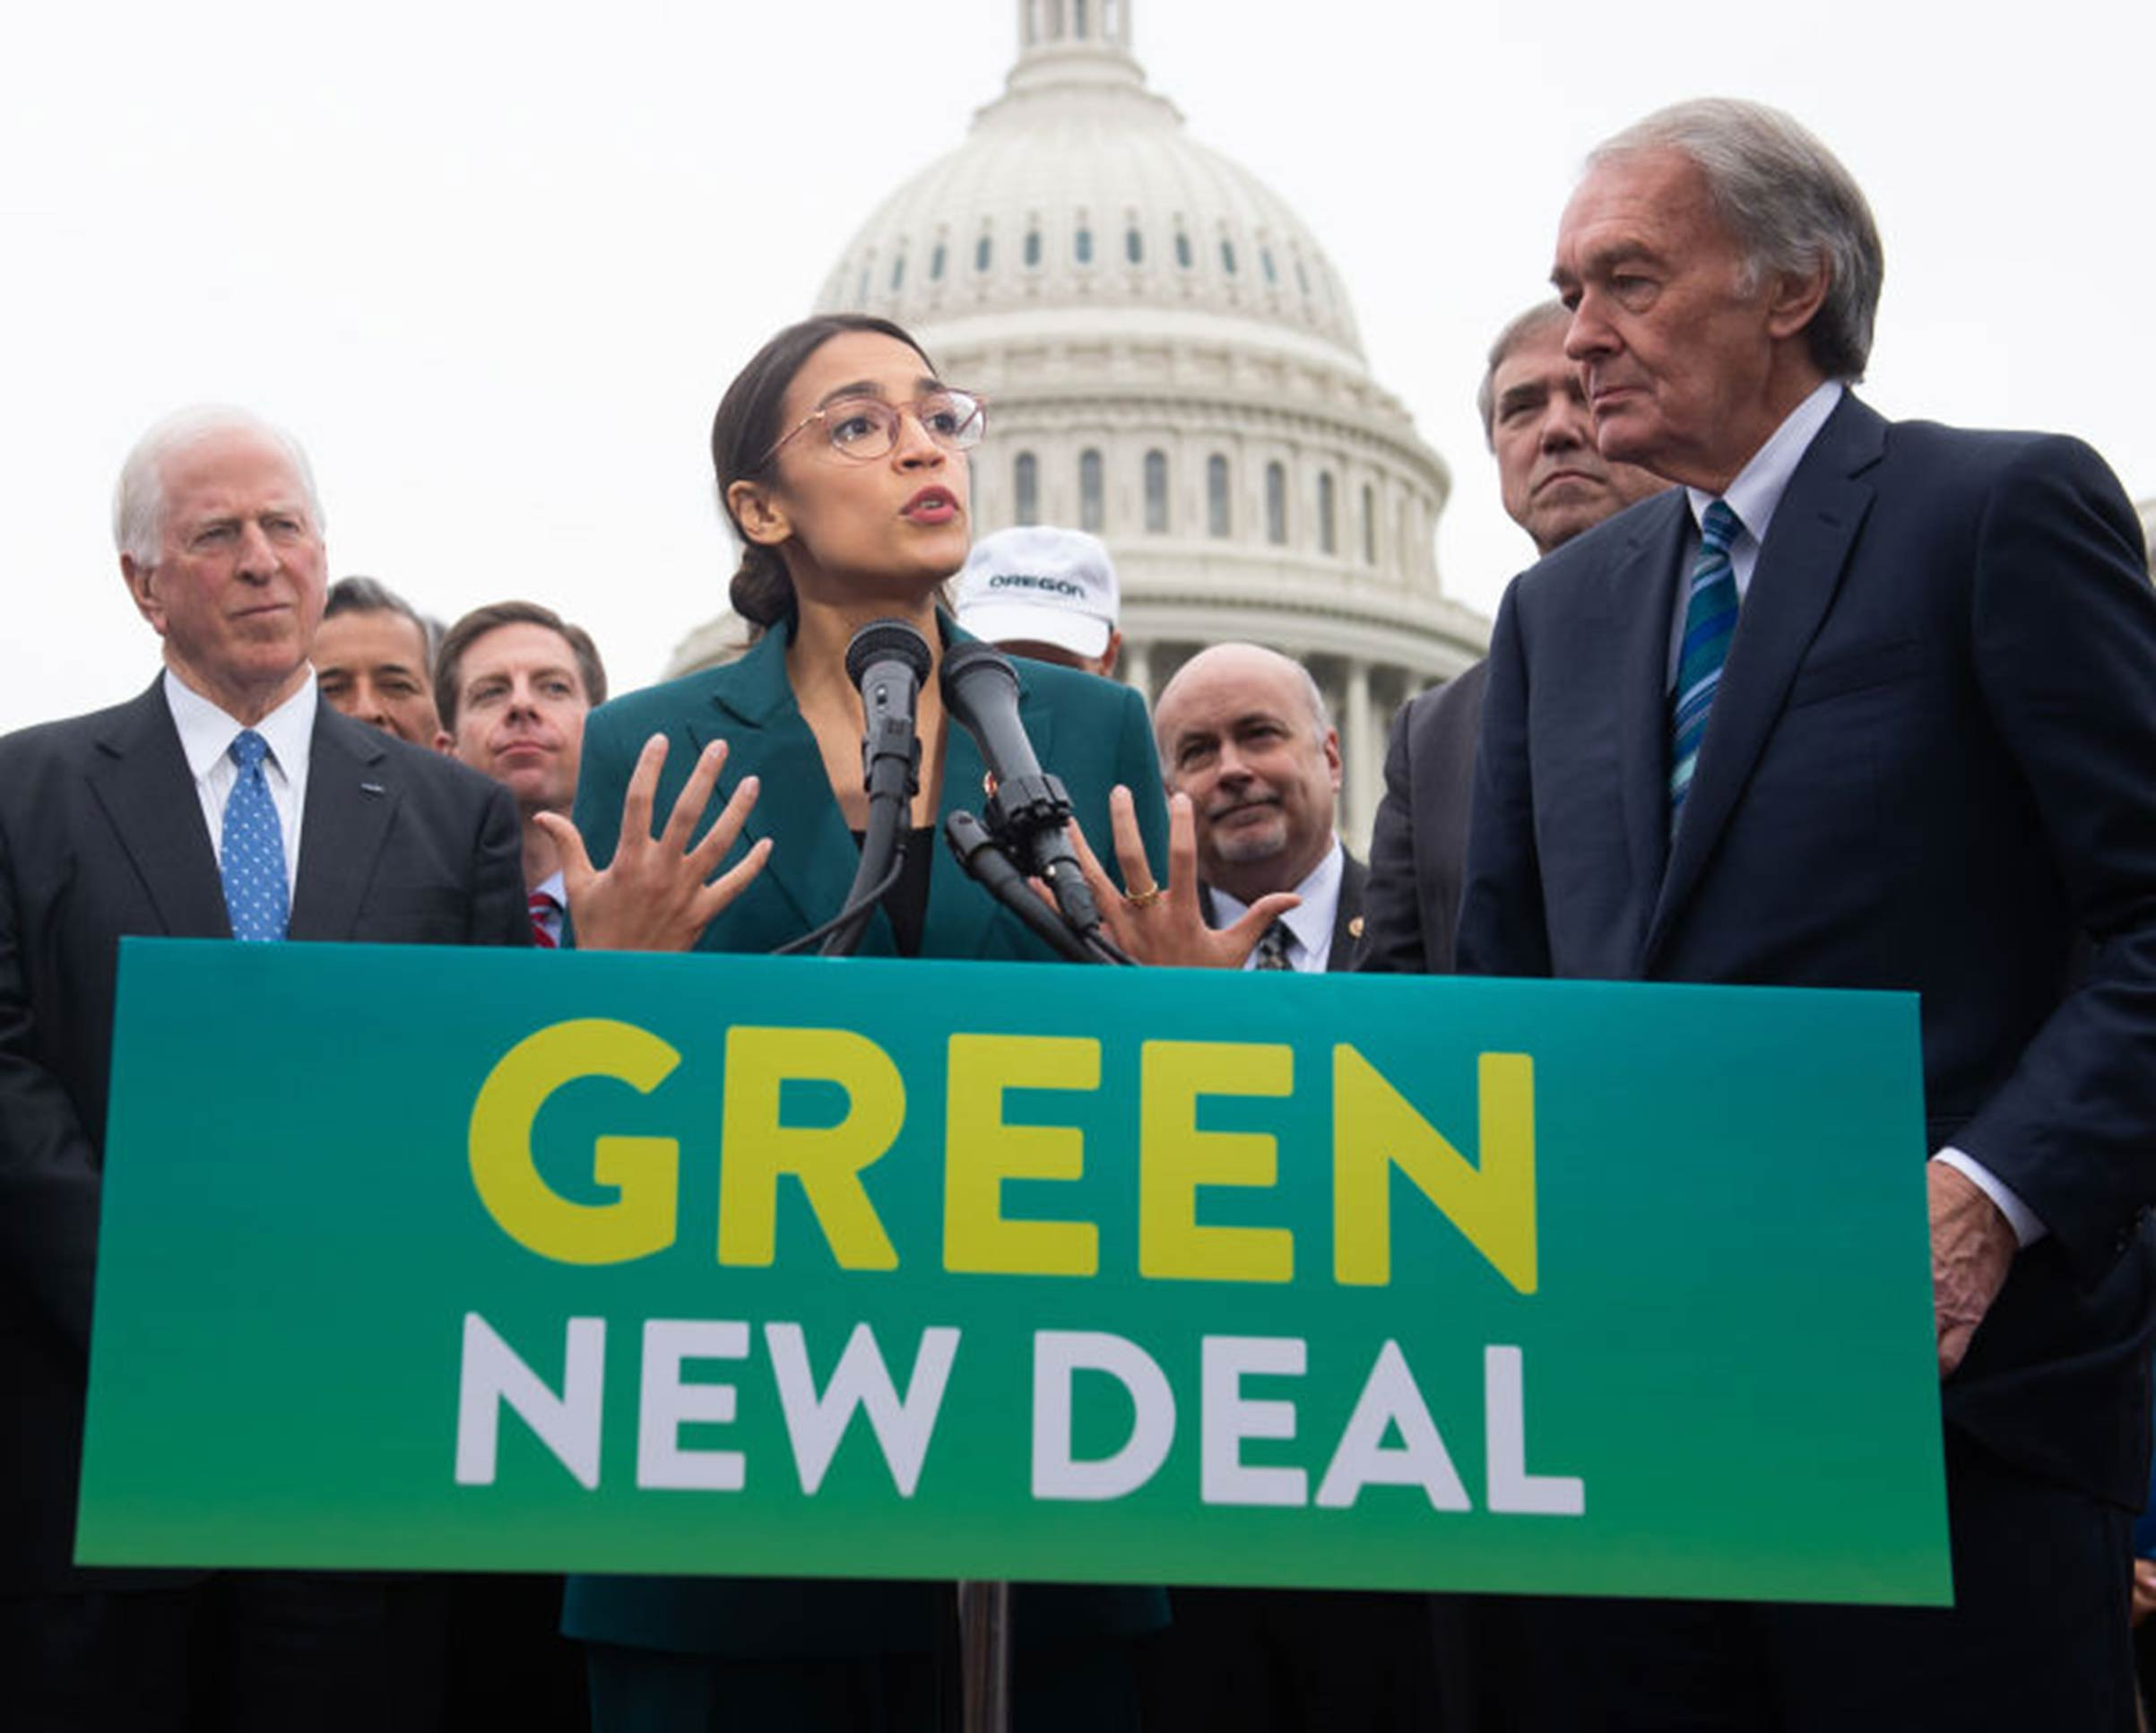 U.S. Representative Alexandria Ocasio-Cortez, Democrat of New York, and U.S. Senator Ed Markey (R), Democrat of Massachusetts, speak during a press conference to announce Green New Deal legislation to promote clean energy programs outside the U.S. Capitol in Washington, DC, on Feb. 7, 2019.